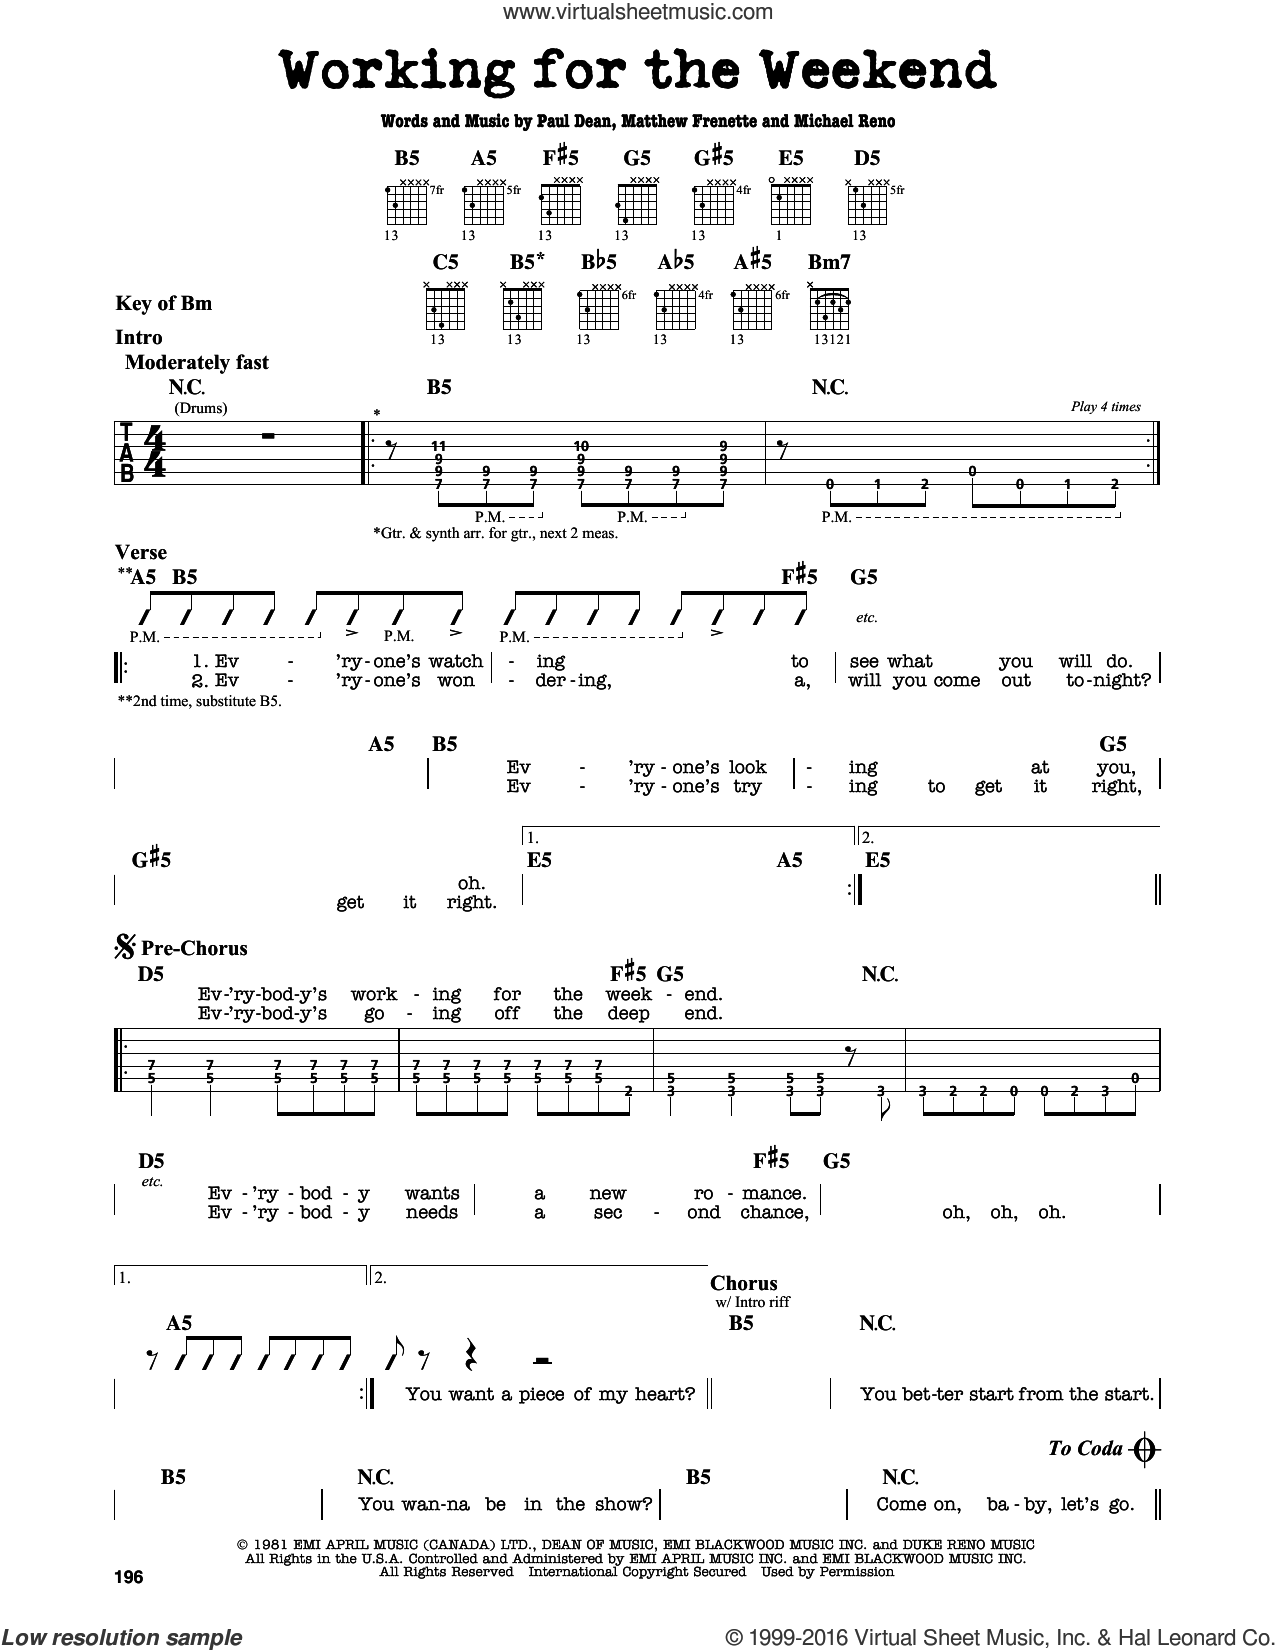 Working For The Weekend sheet music for guitar solo (lead sheet) by Paul Dean